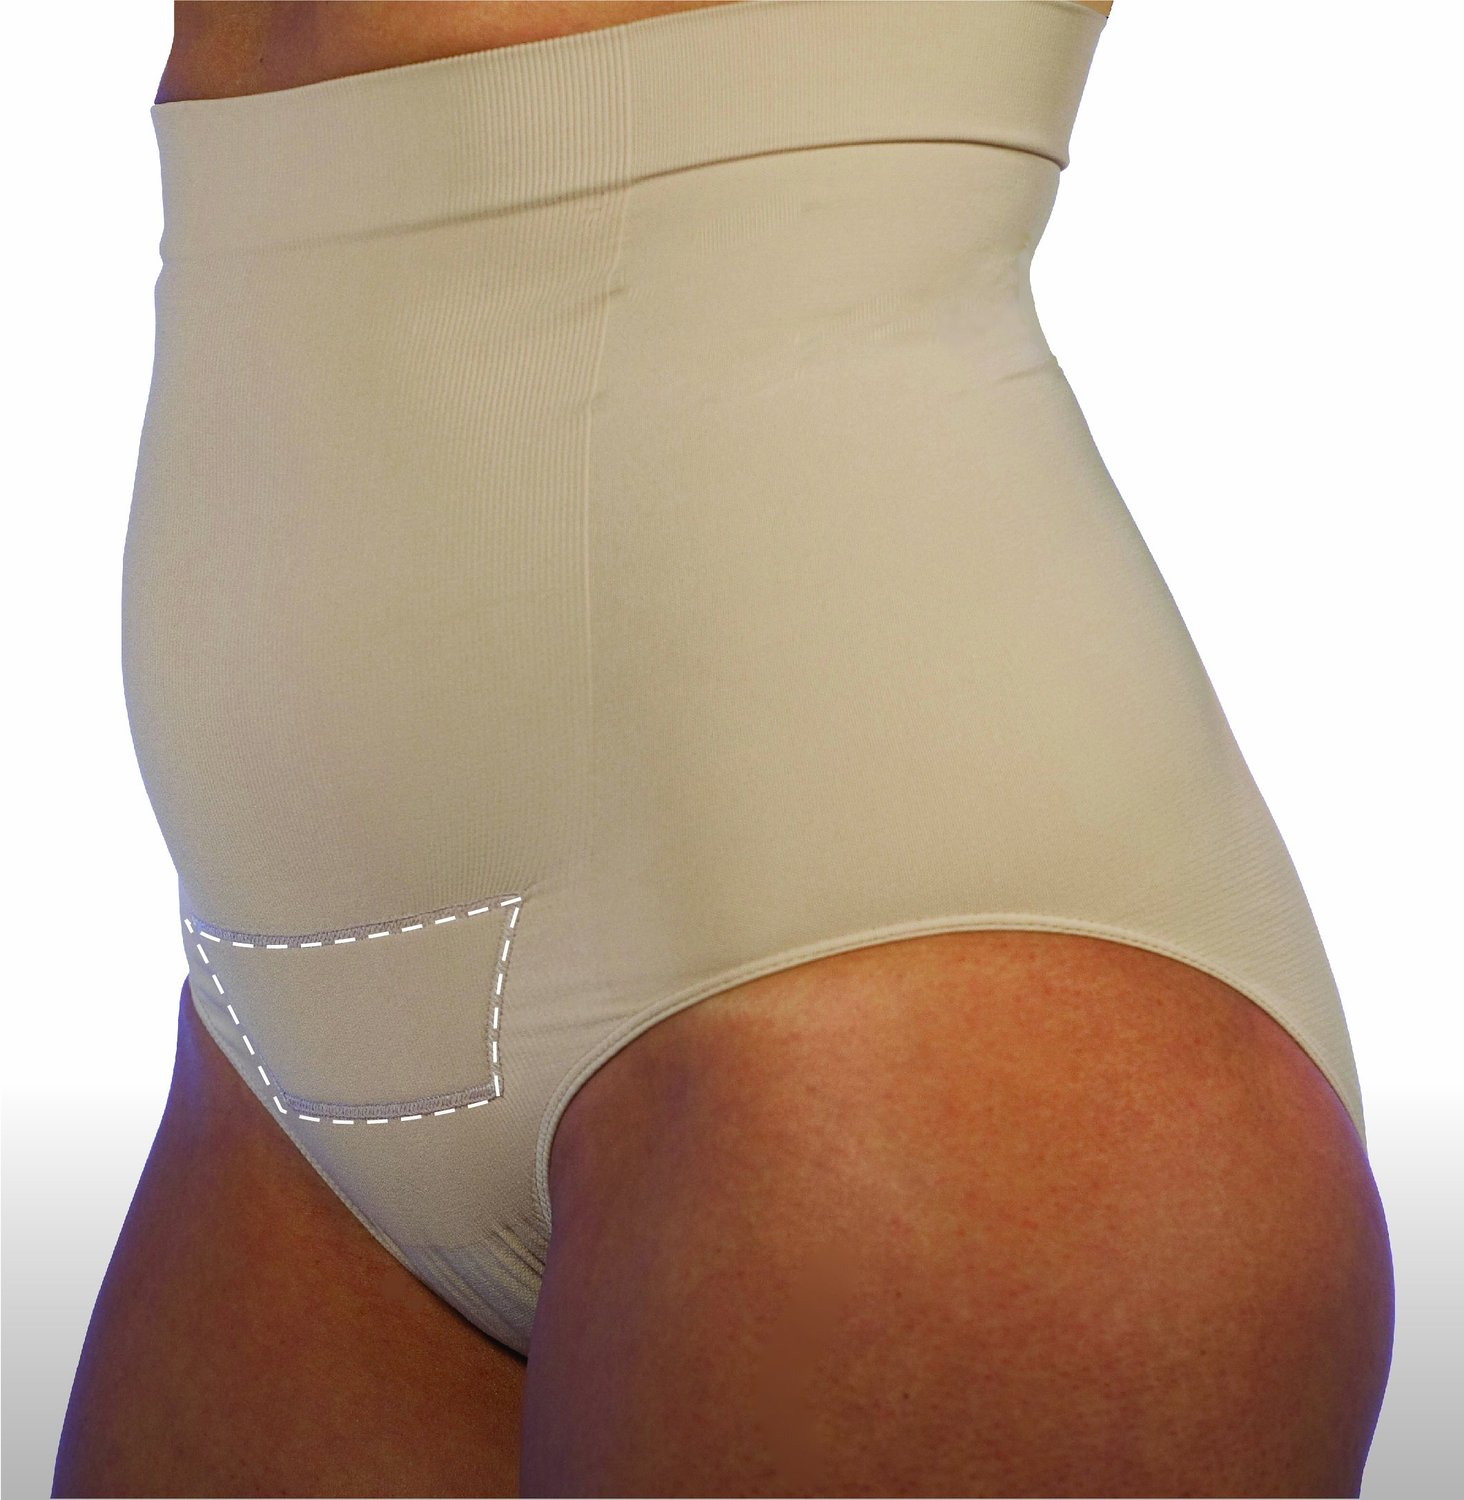 UpSpring Baby C-Panty High Waist C-Section Recovery